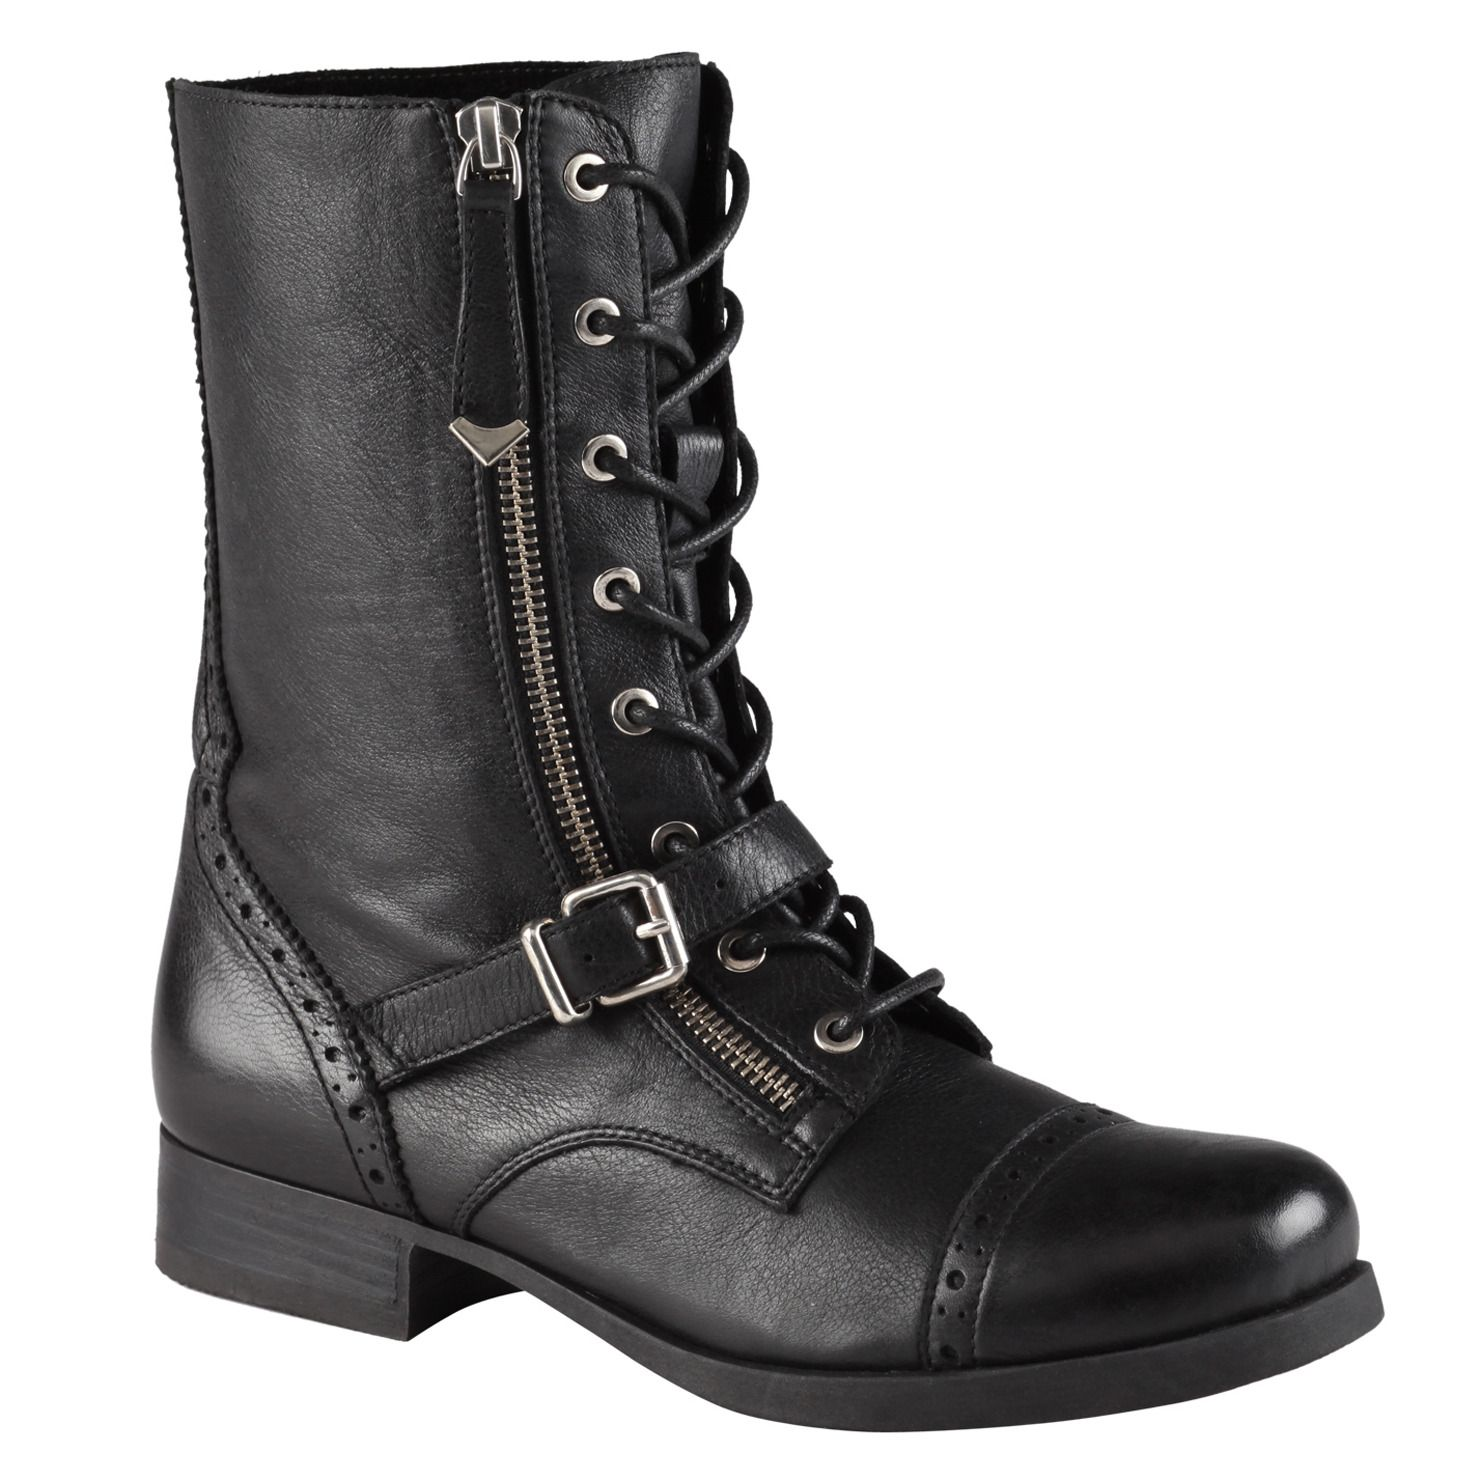 MARLEN - women's mid boots boots for sale at ALDO Shoes.